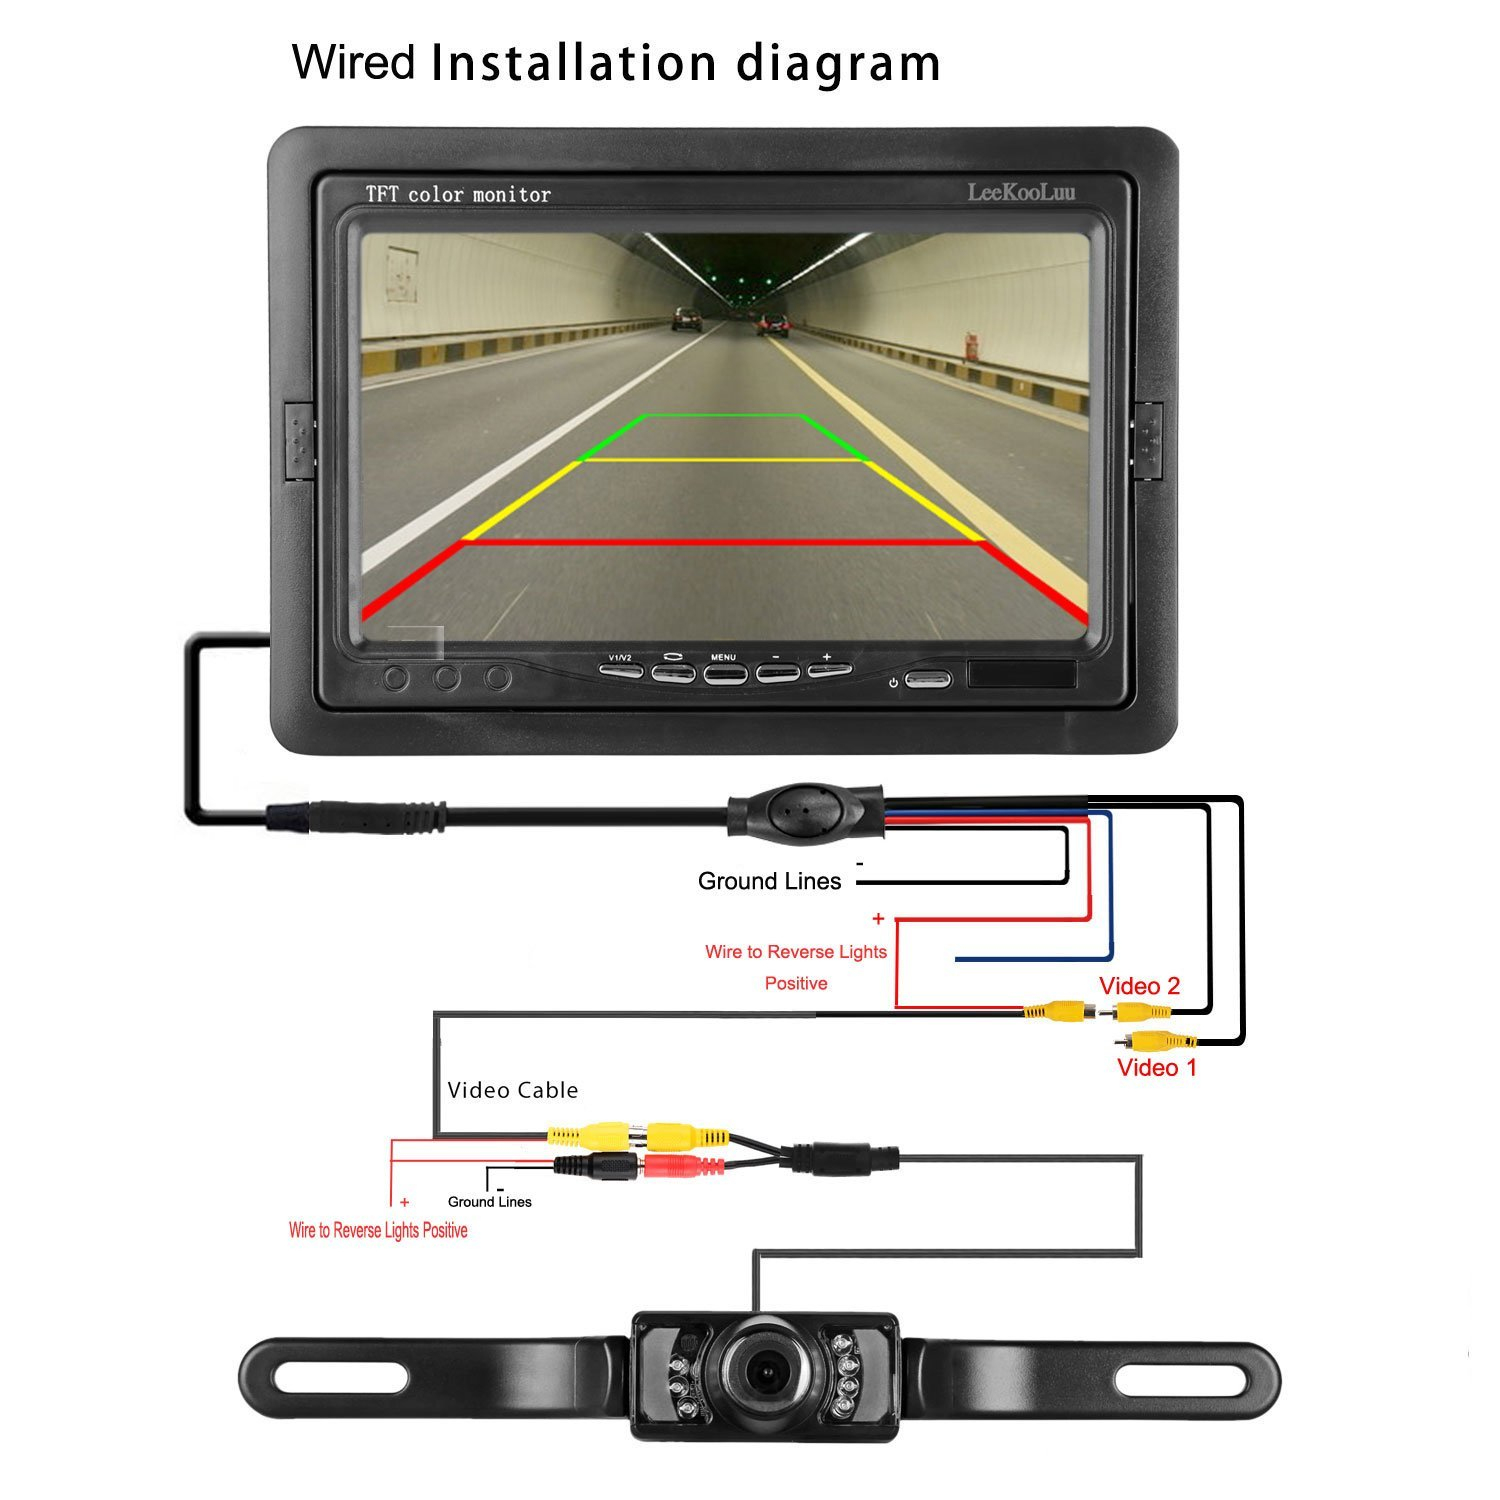 hight resolution of  tri gas valve wiring diagram ae f d a eb leekooluu backup camera on dell